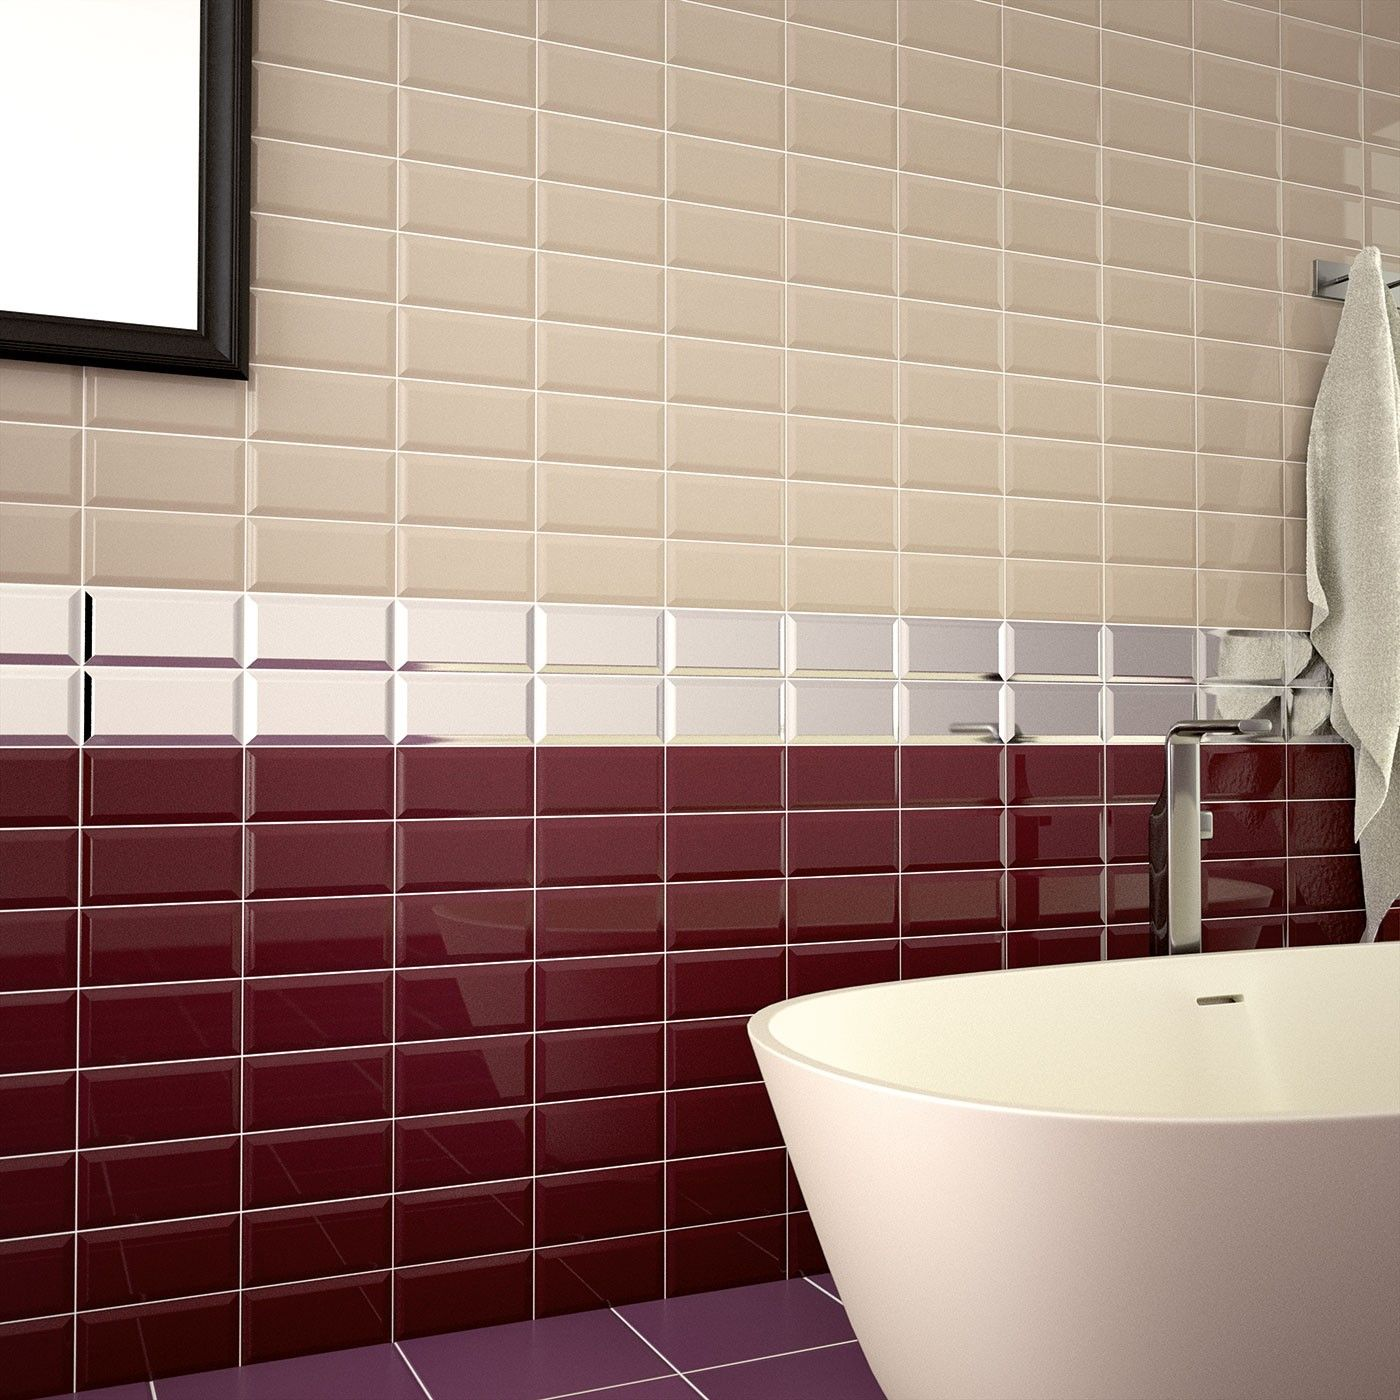 New Metro Plum 100 X 200 Ceramic Wall Tile Porcelain Tile Bathroom Ceramic Wall Tiles Grey Bathroom Tiles